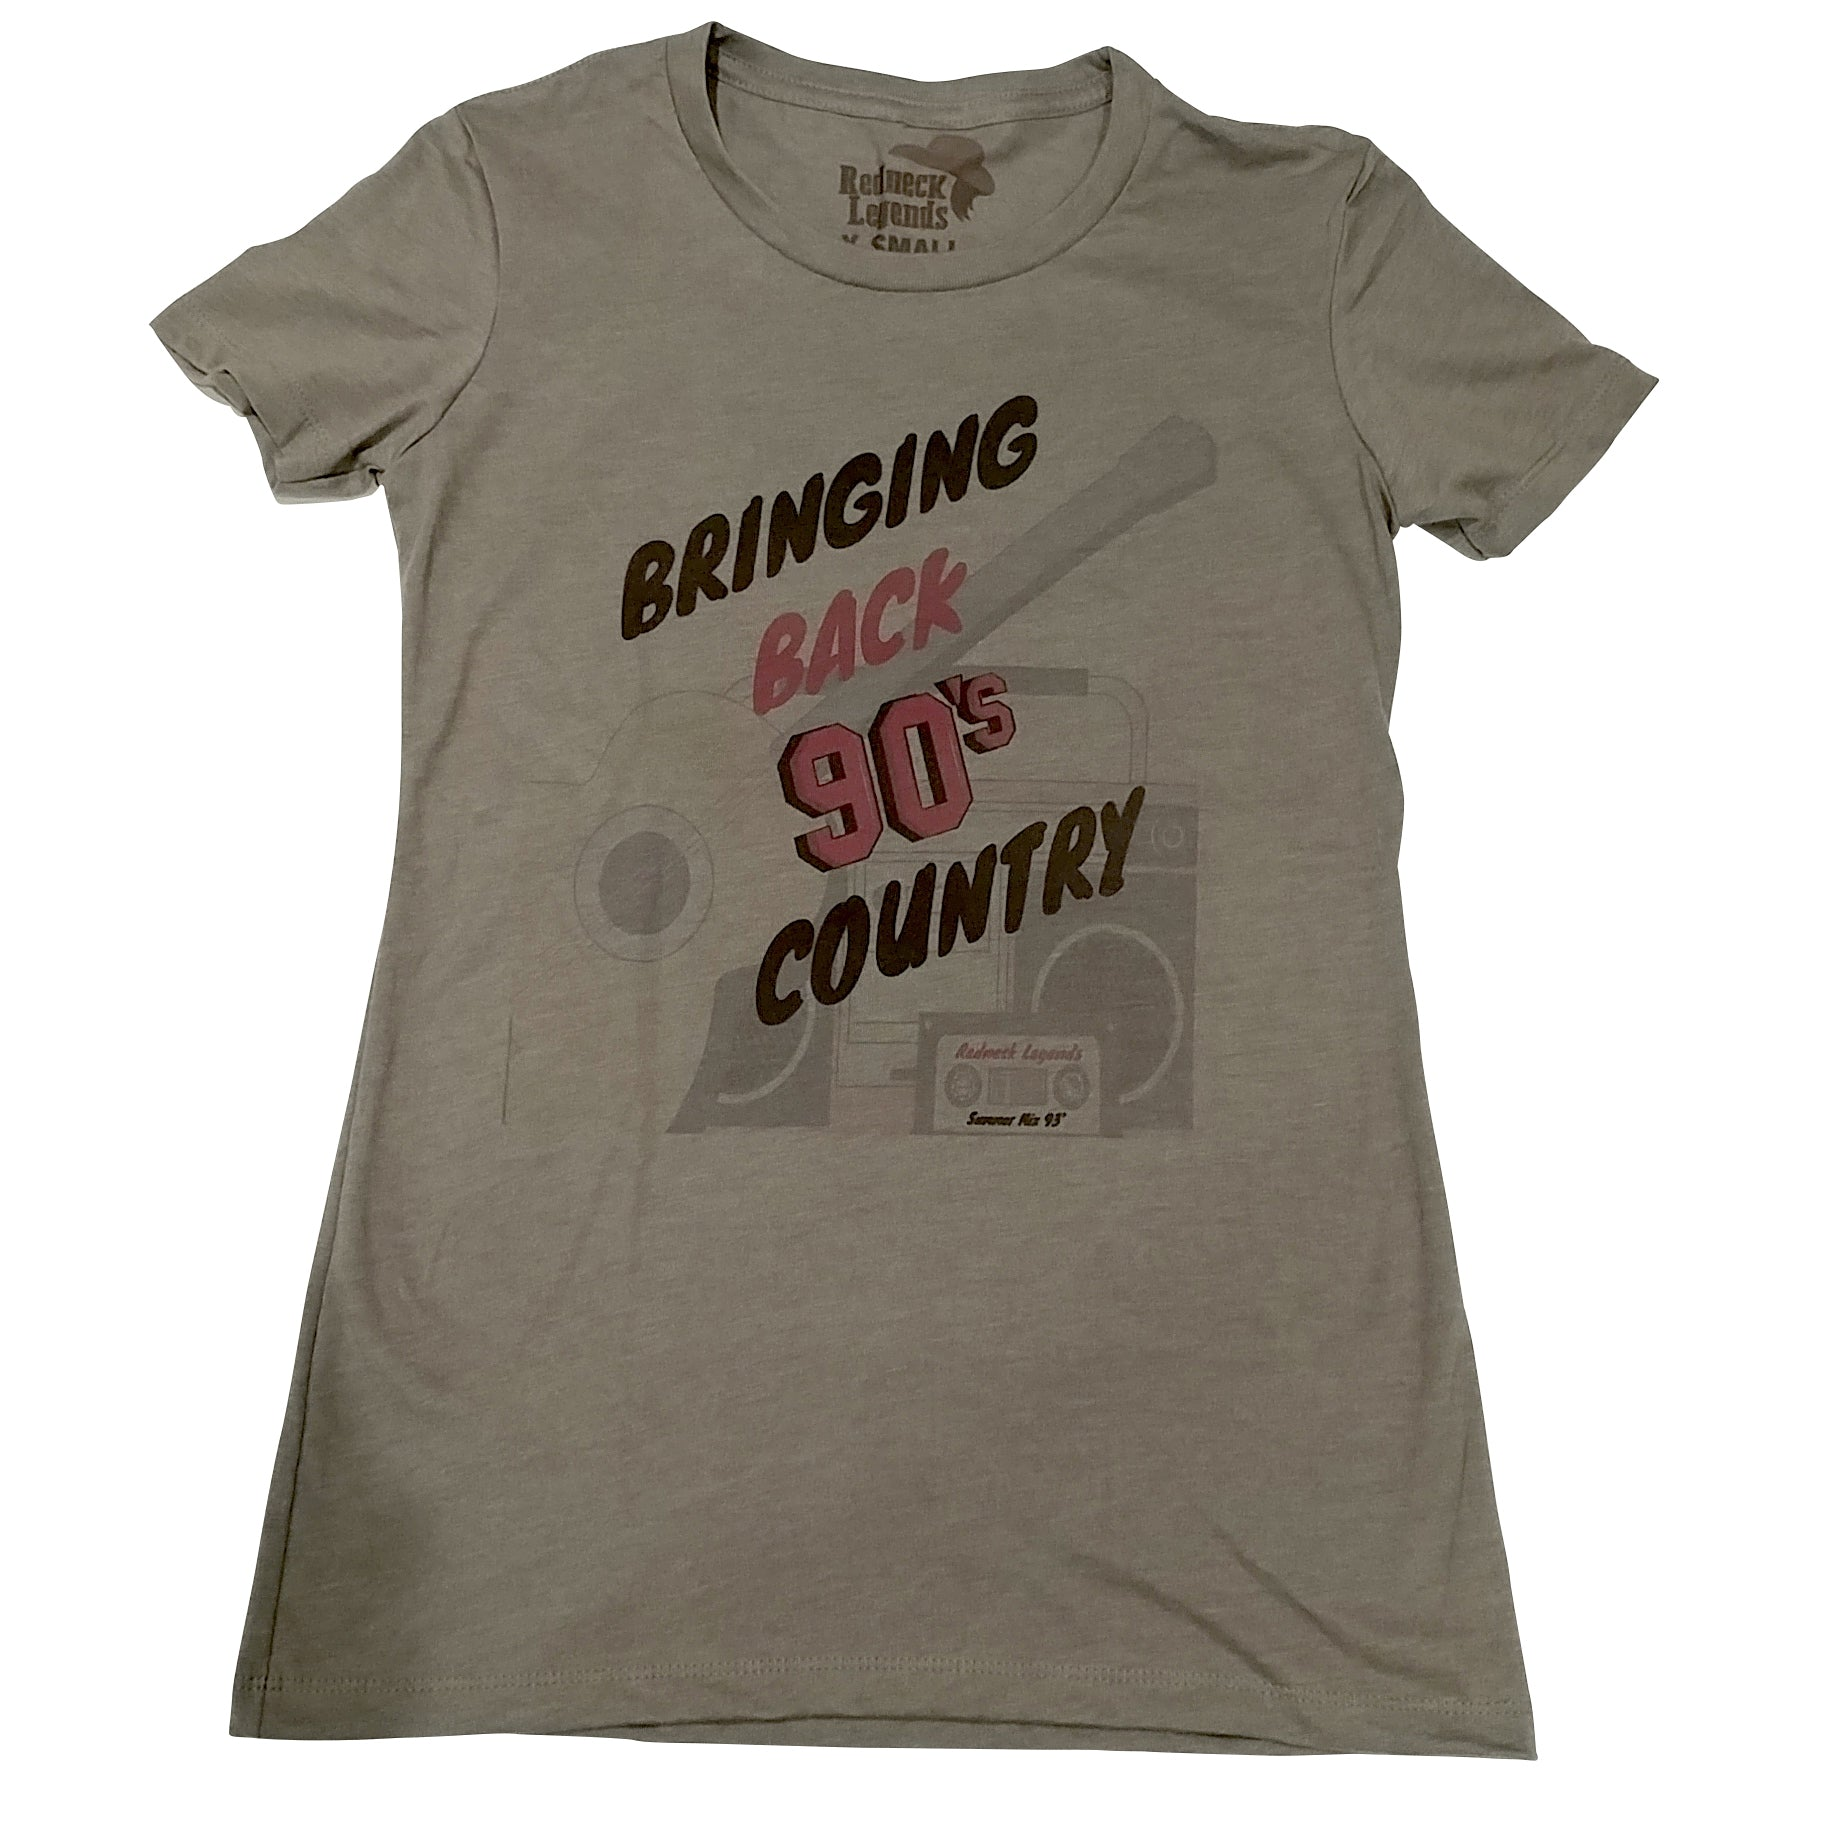 90's Country Women's T-Shirts